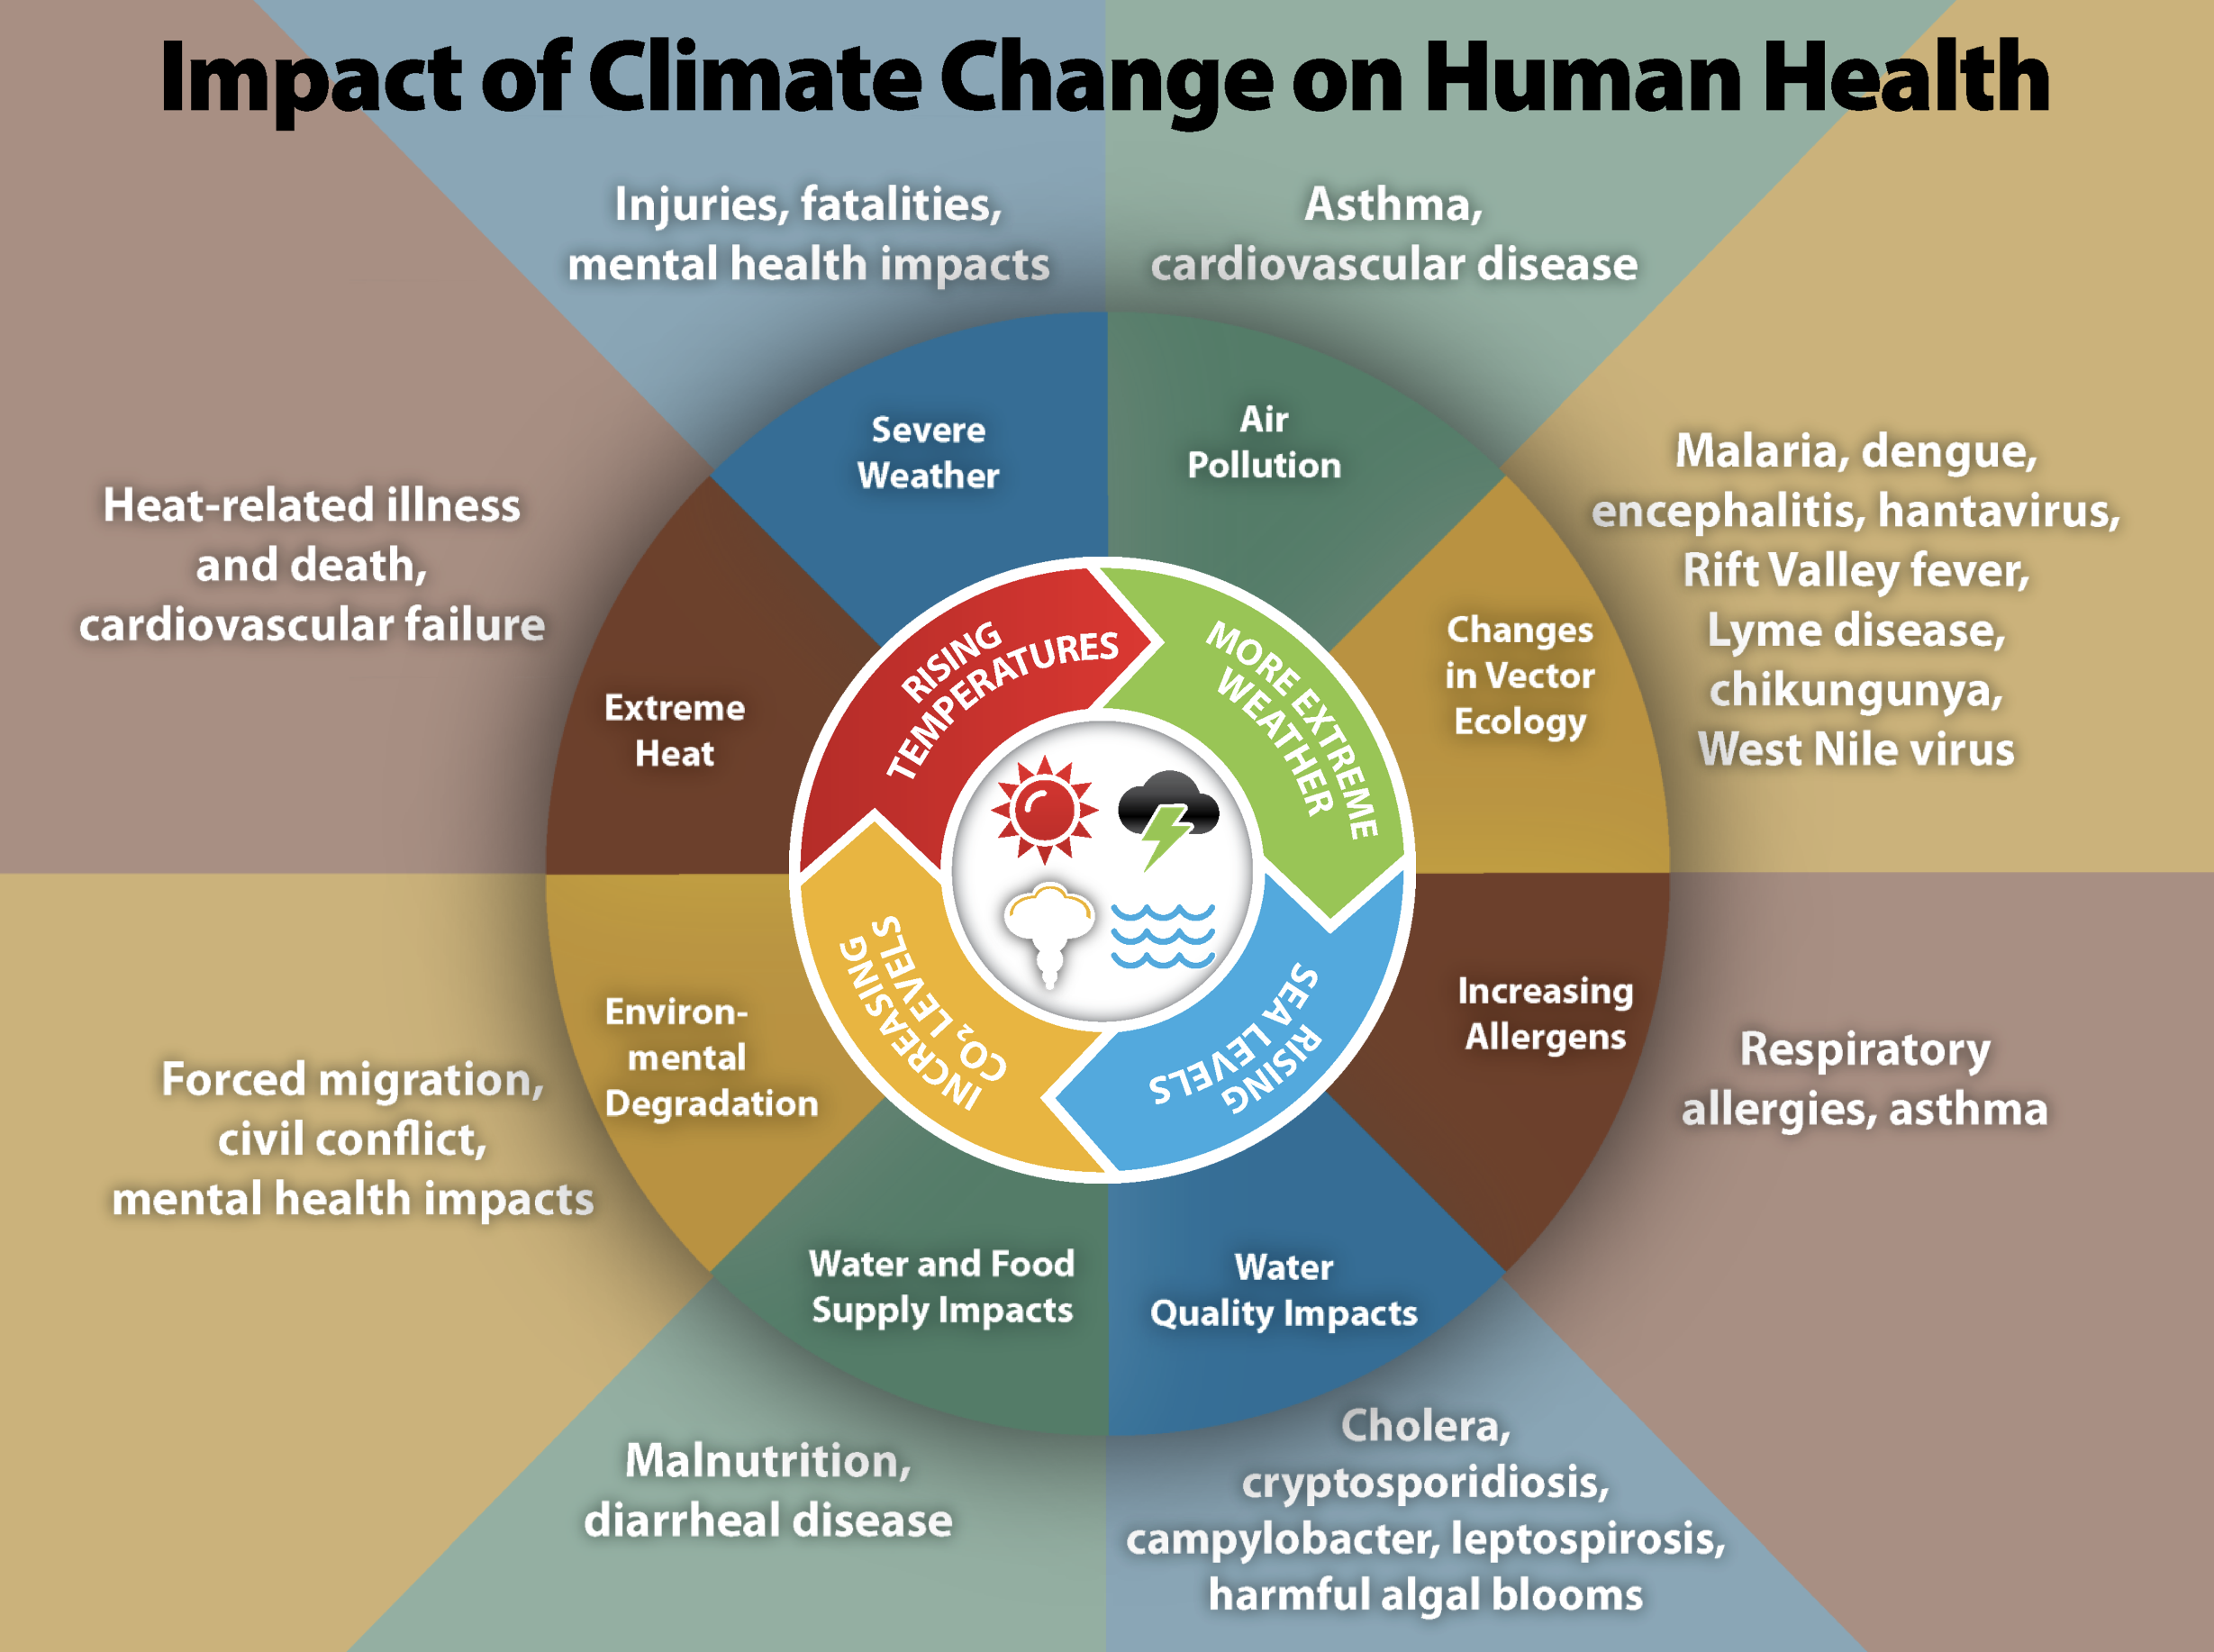 Impact-of-Climate-Change-on-Human-Health.png#asset:4097:url